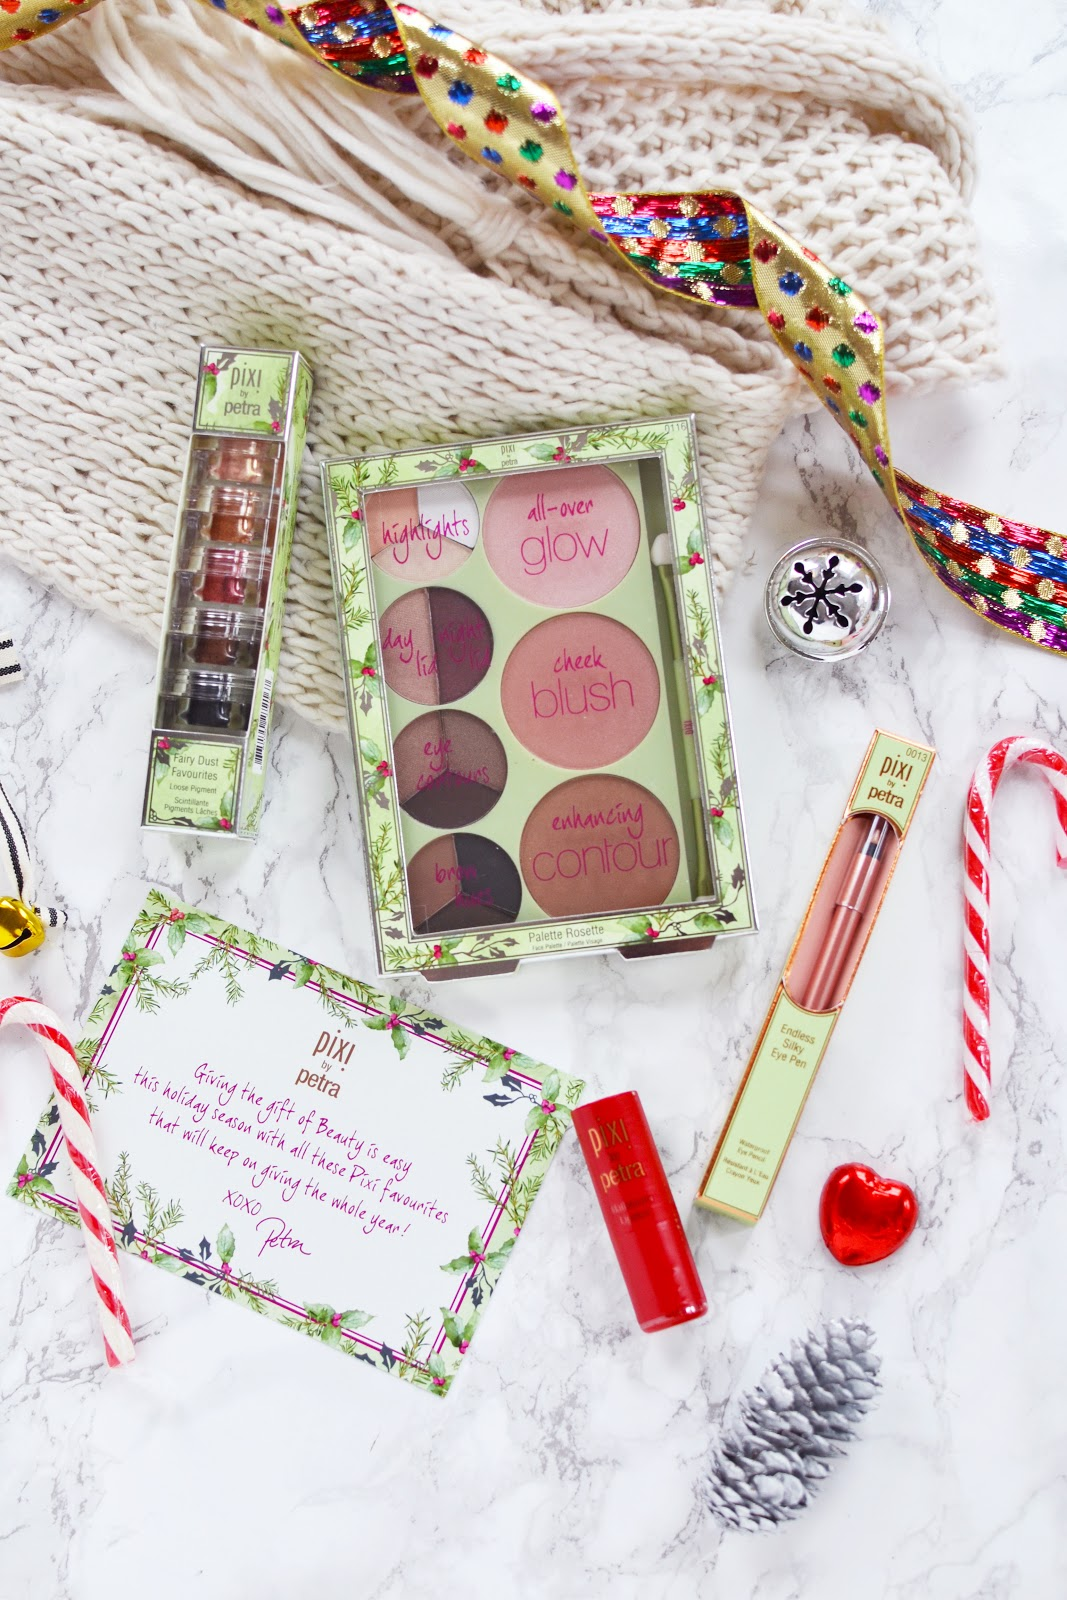 pixi by petra cosmetics make up products, affordable make up